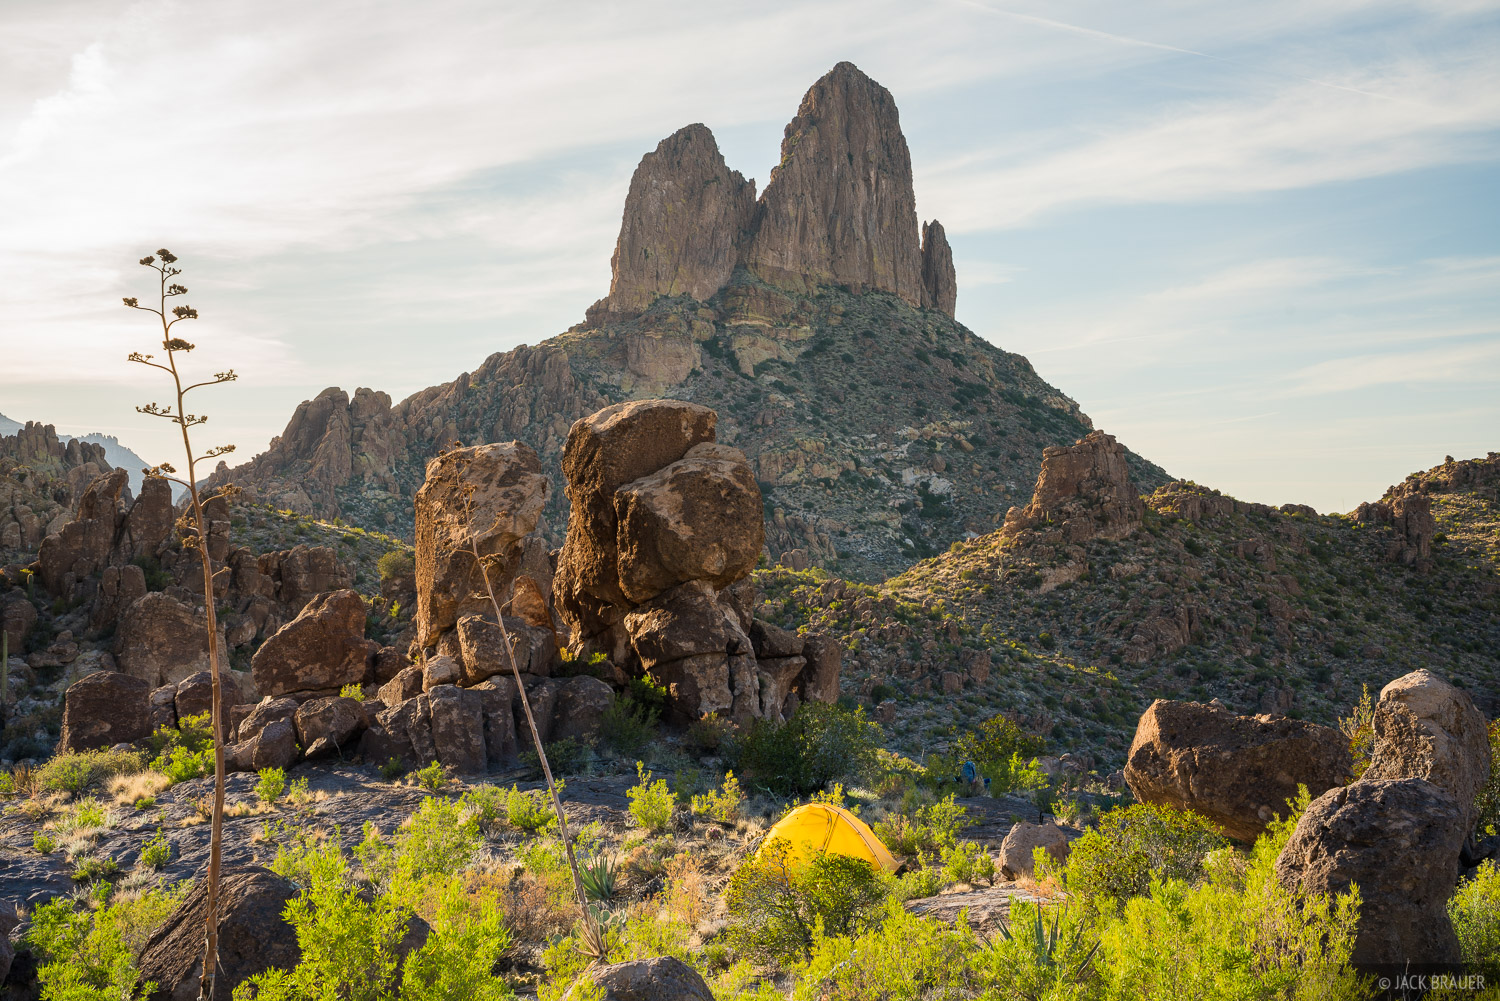 Arizona, Superstition Mountains, Superstition Wilderness, Weavers Needle, tent, photo